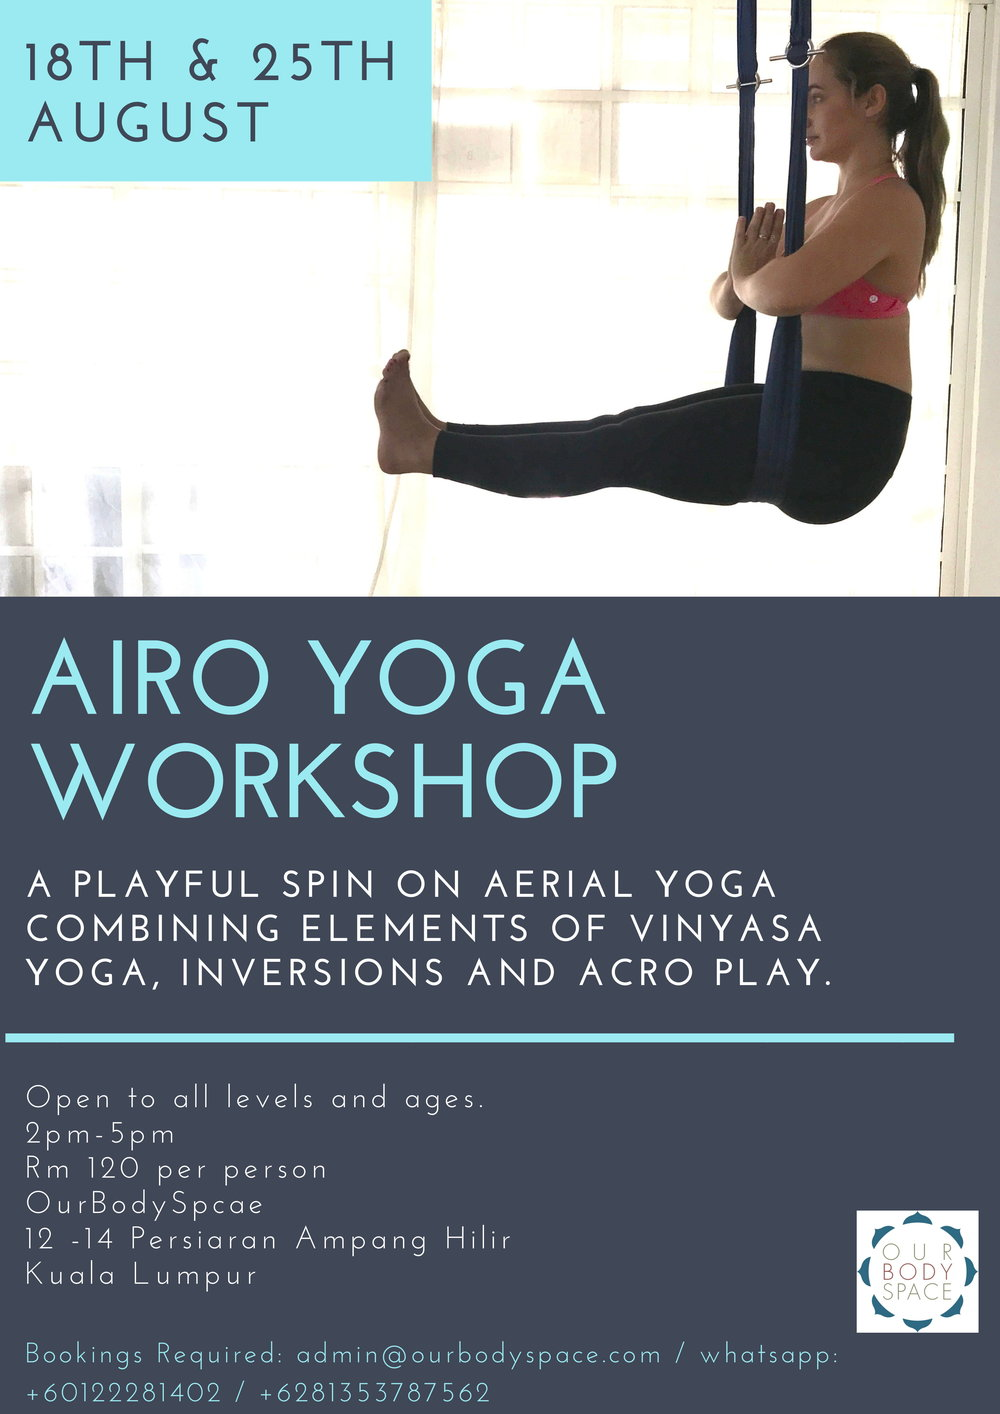 Airo Yoga Workshop August-1.jpg